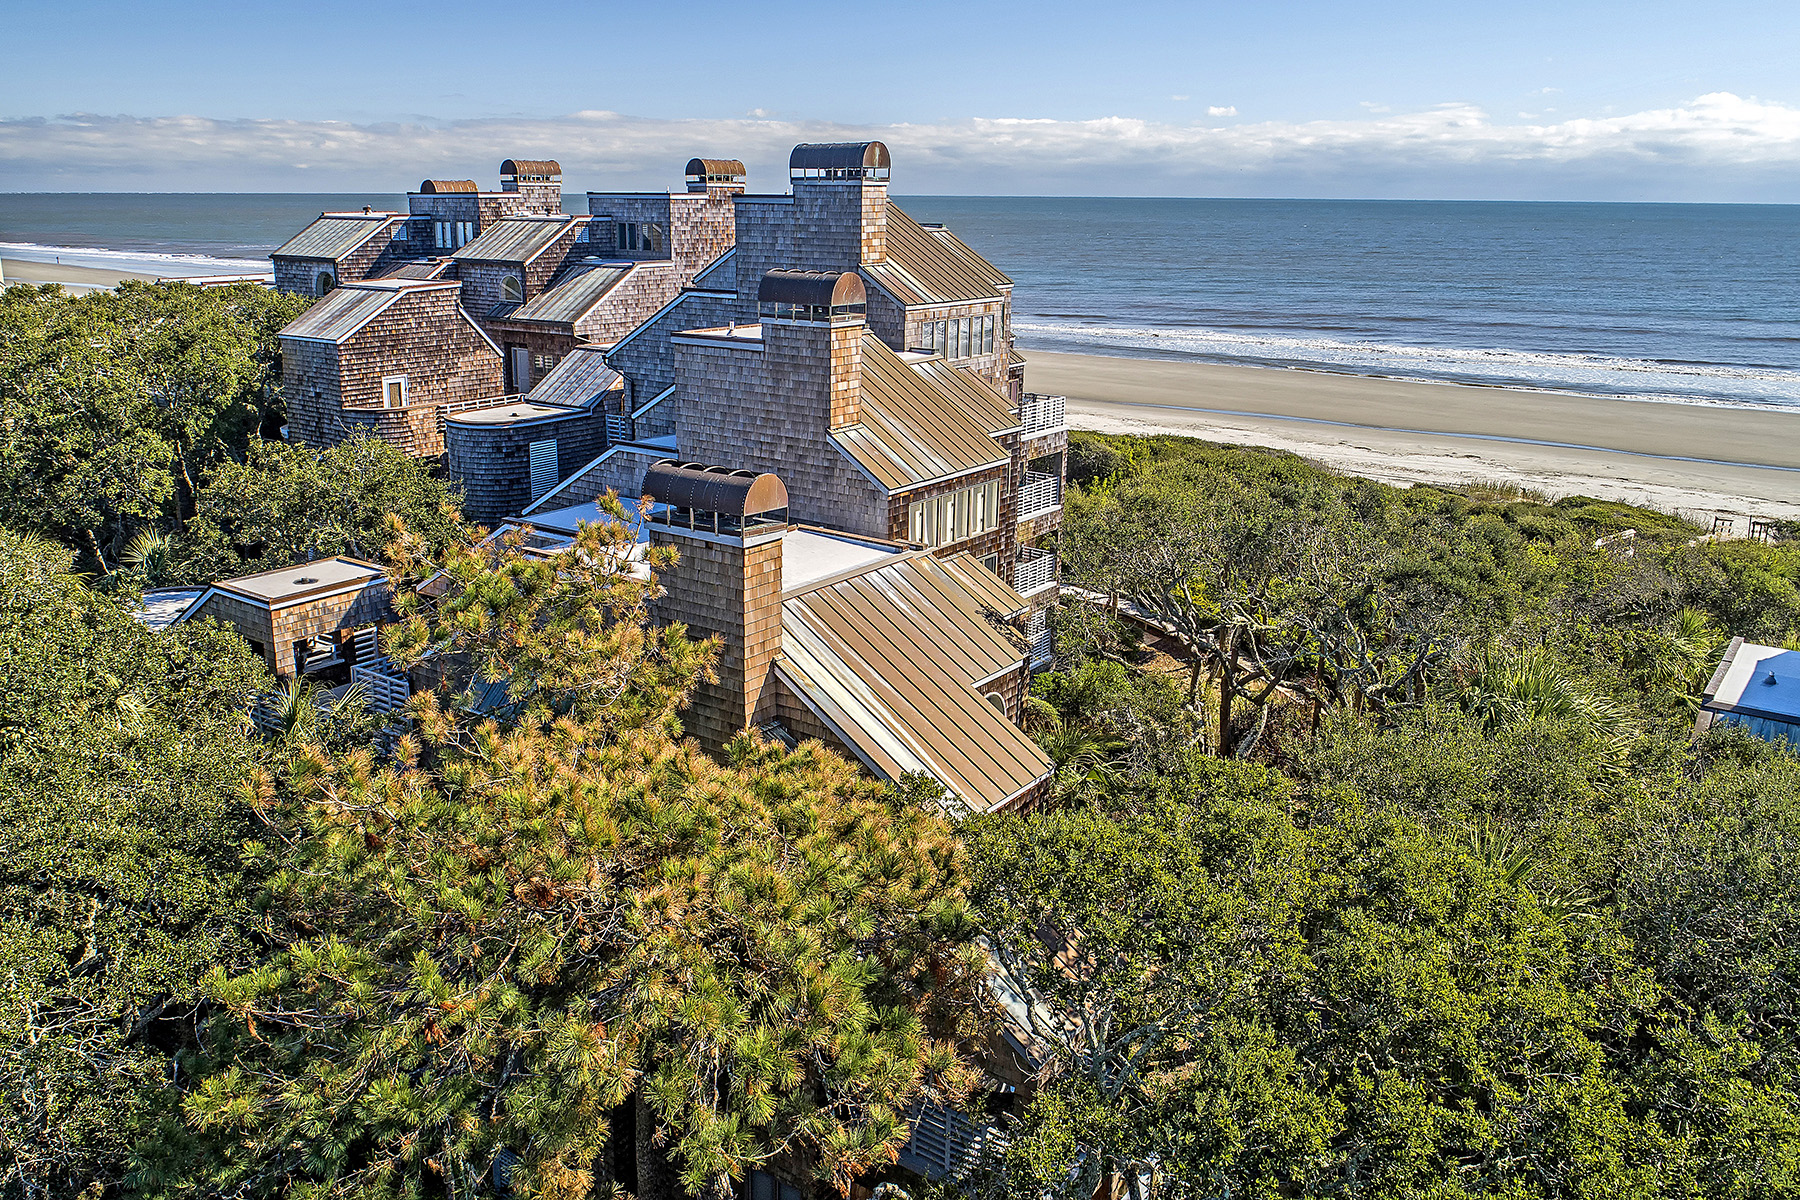 Single Family Homes for Sale at 4453 Sea Forest Drive Kiawah Island, South Carolina 29455 United States